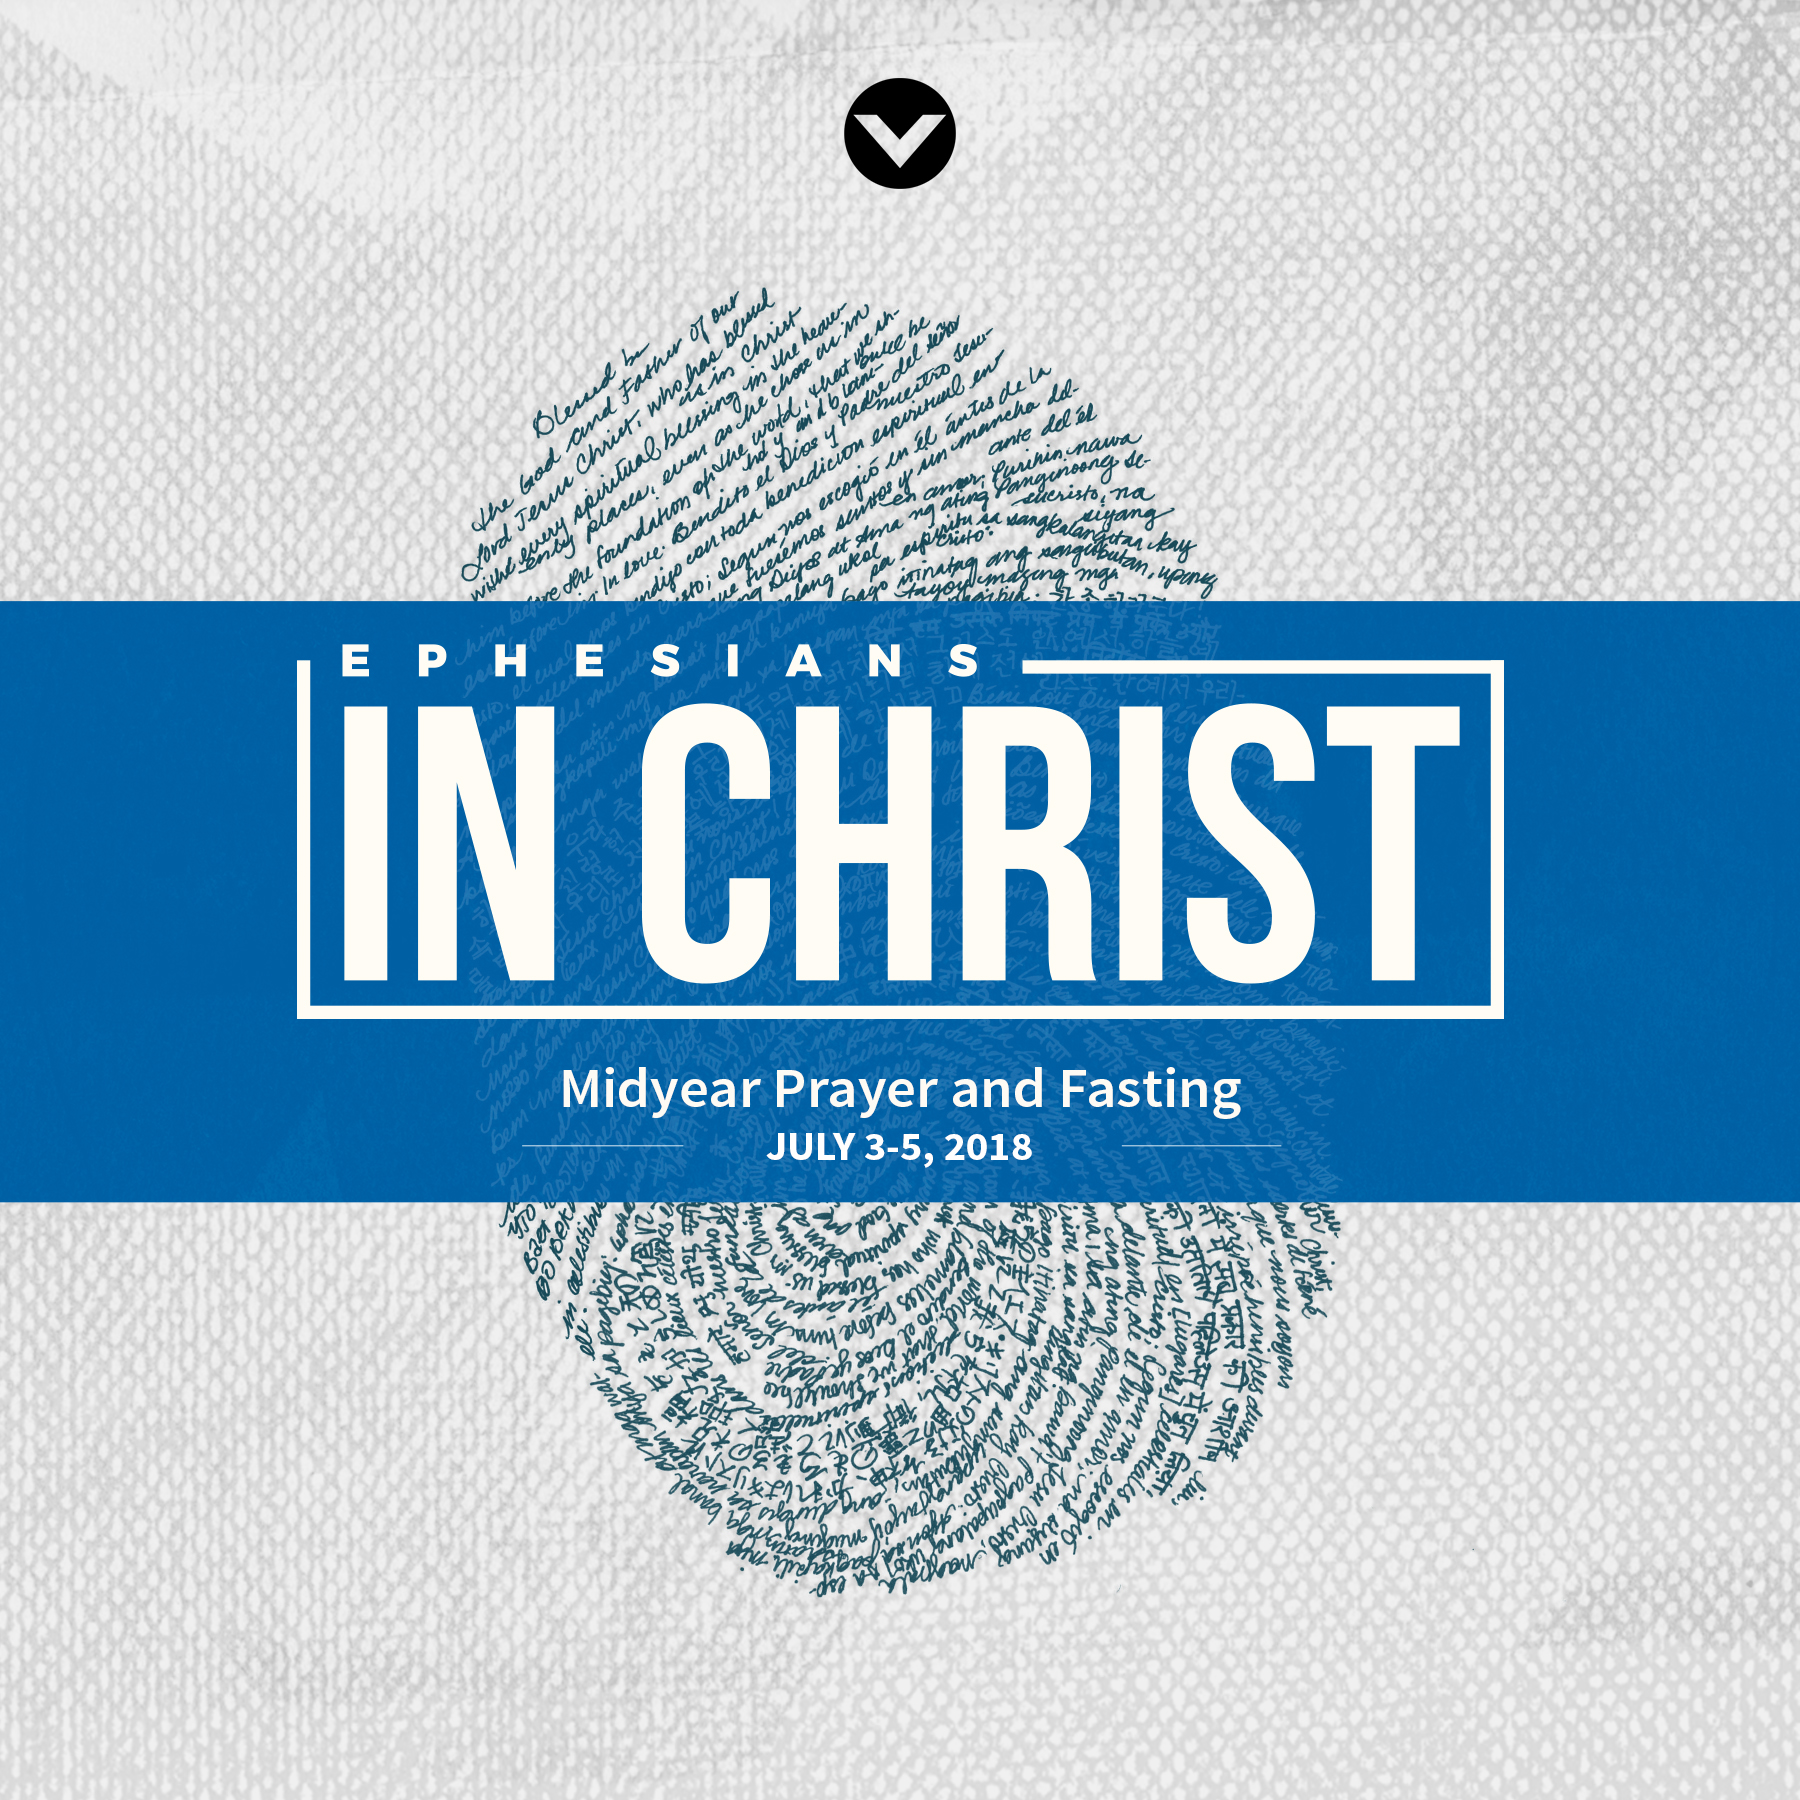 In Christ - Mid-Year Prayer and Fasting 2018 - Victory